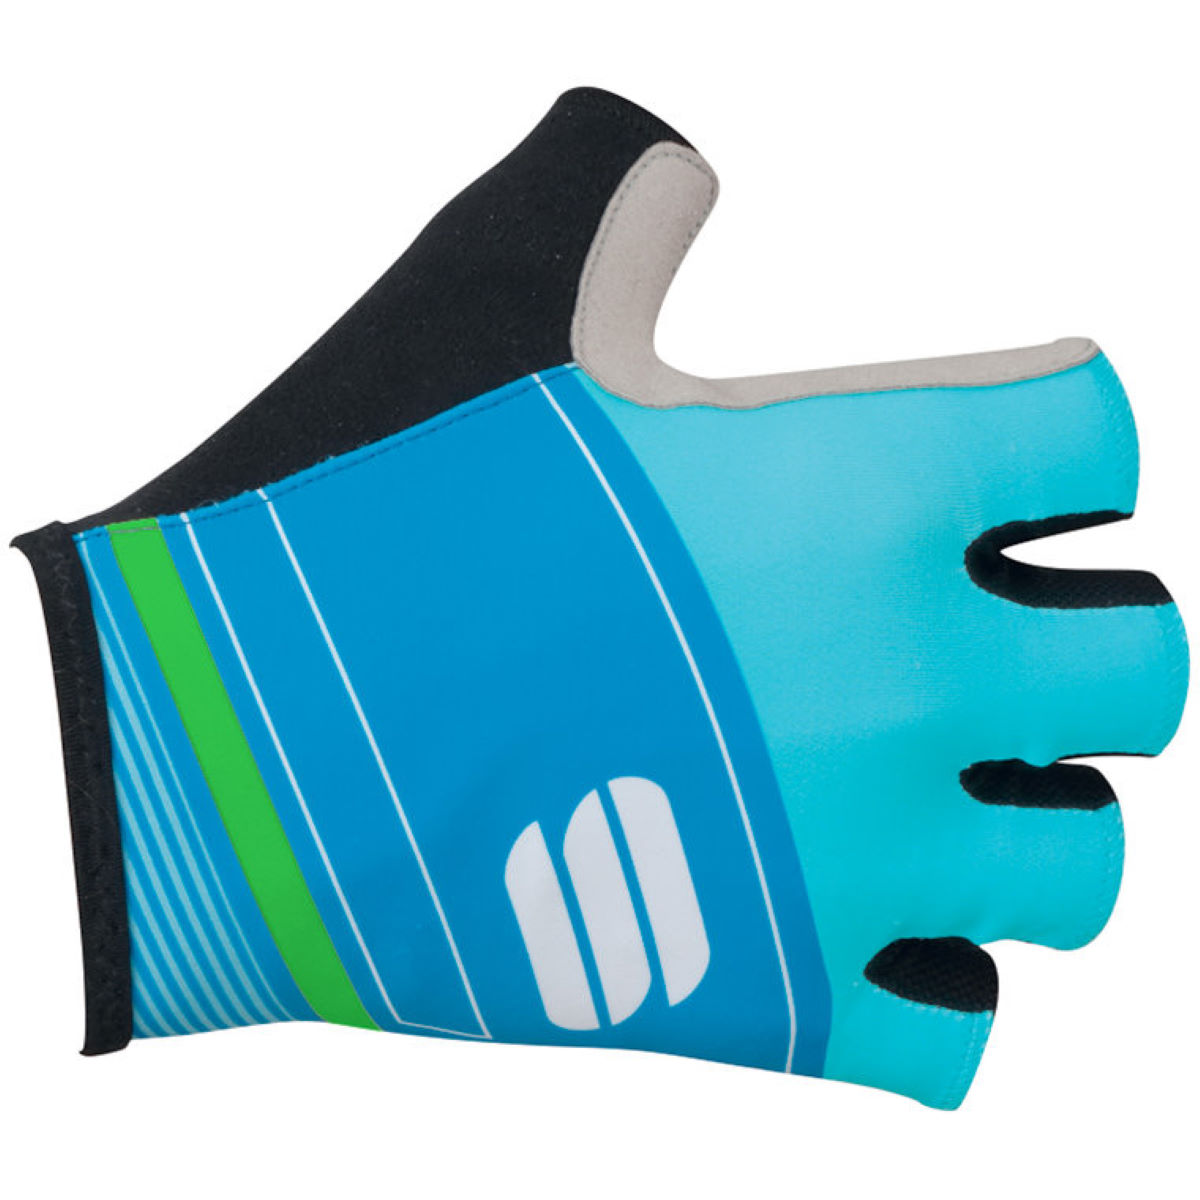 Gants courts Sportful Gruppetto Pro - XXL Blue/Green Gants courts